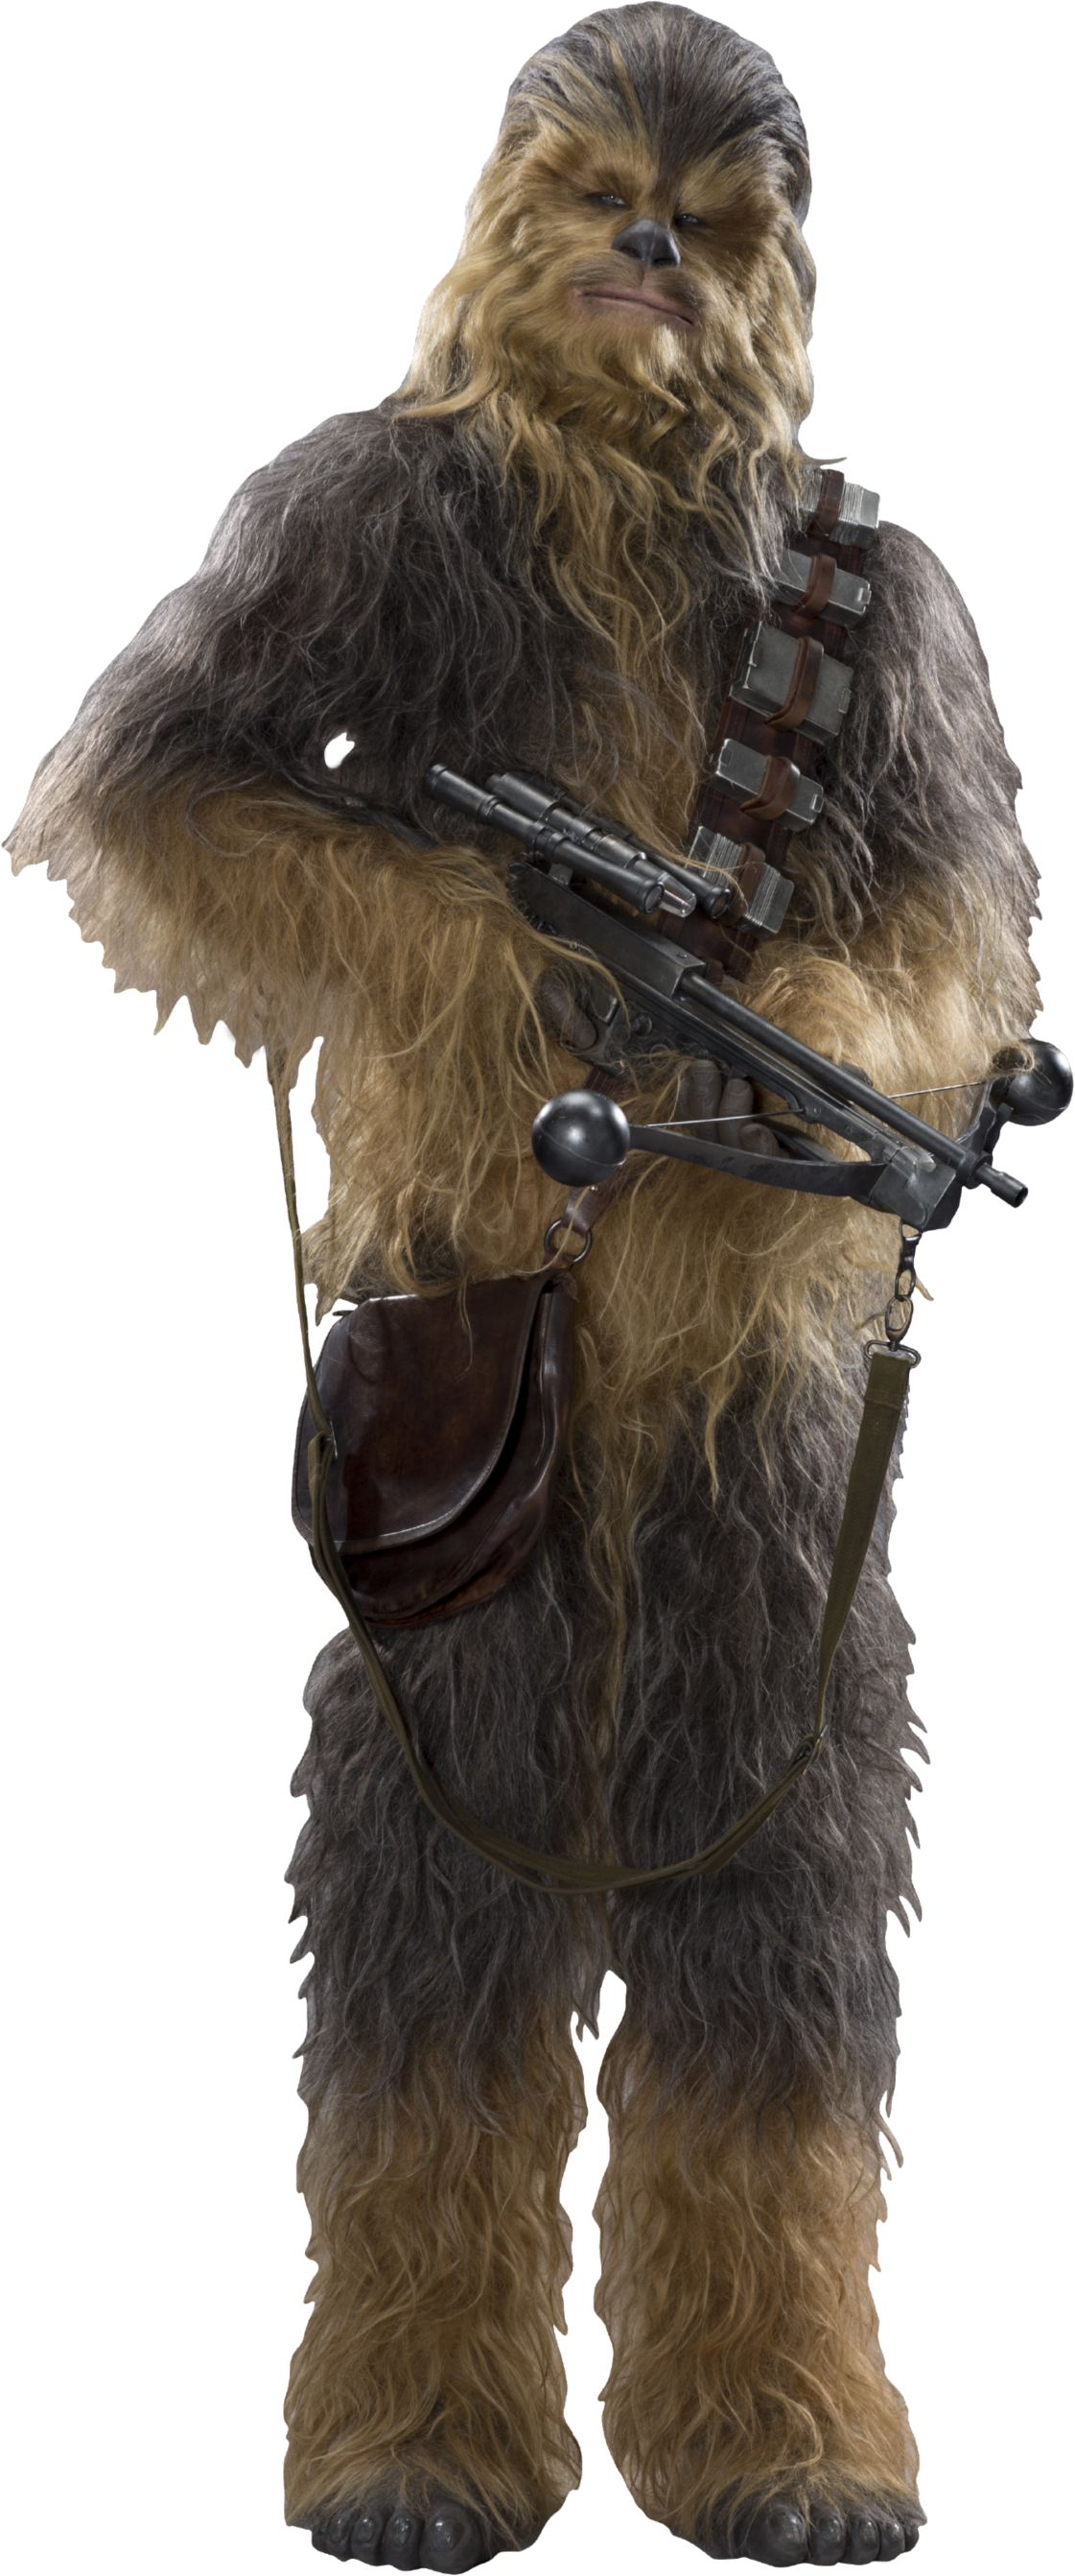 Chewbacca png. Image vs battles wiki